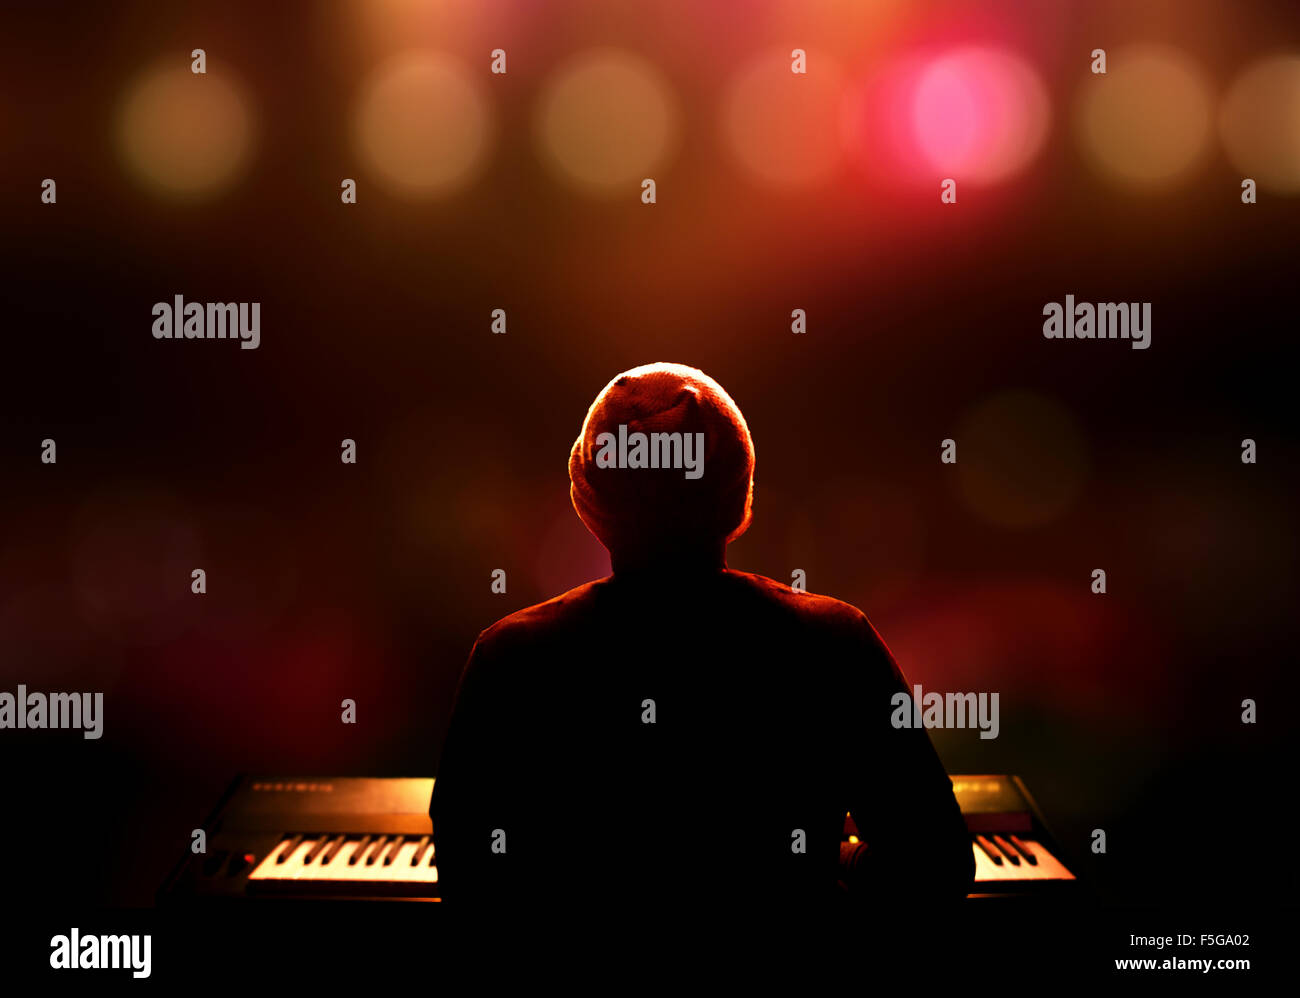 Pianist playing the synthesizer live on stage. Seen from behind with extreme shallow DOF - Stock Image